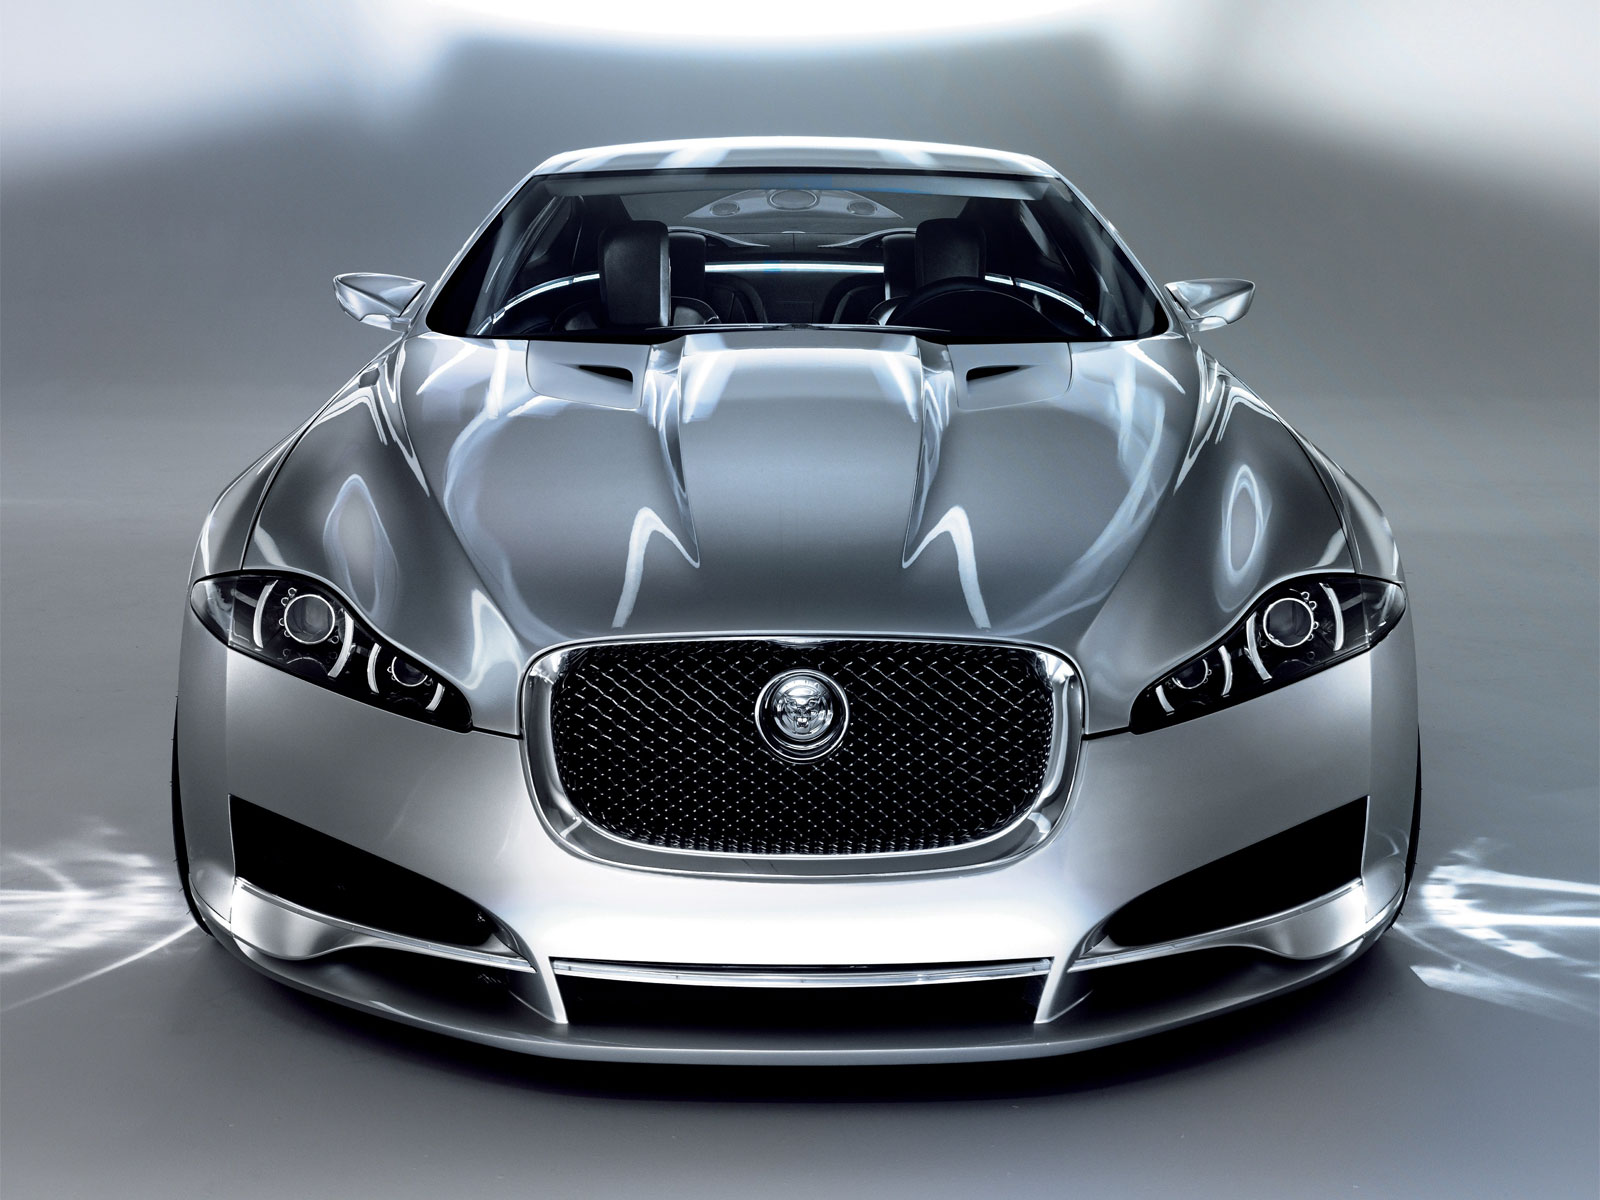 Perfect Jaguar XF 2013 Price, Review, Features, Specs, And Information